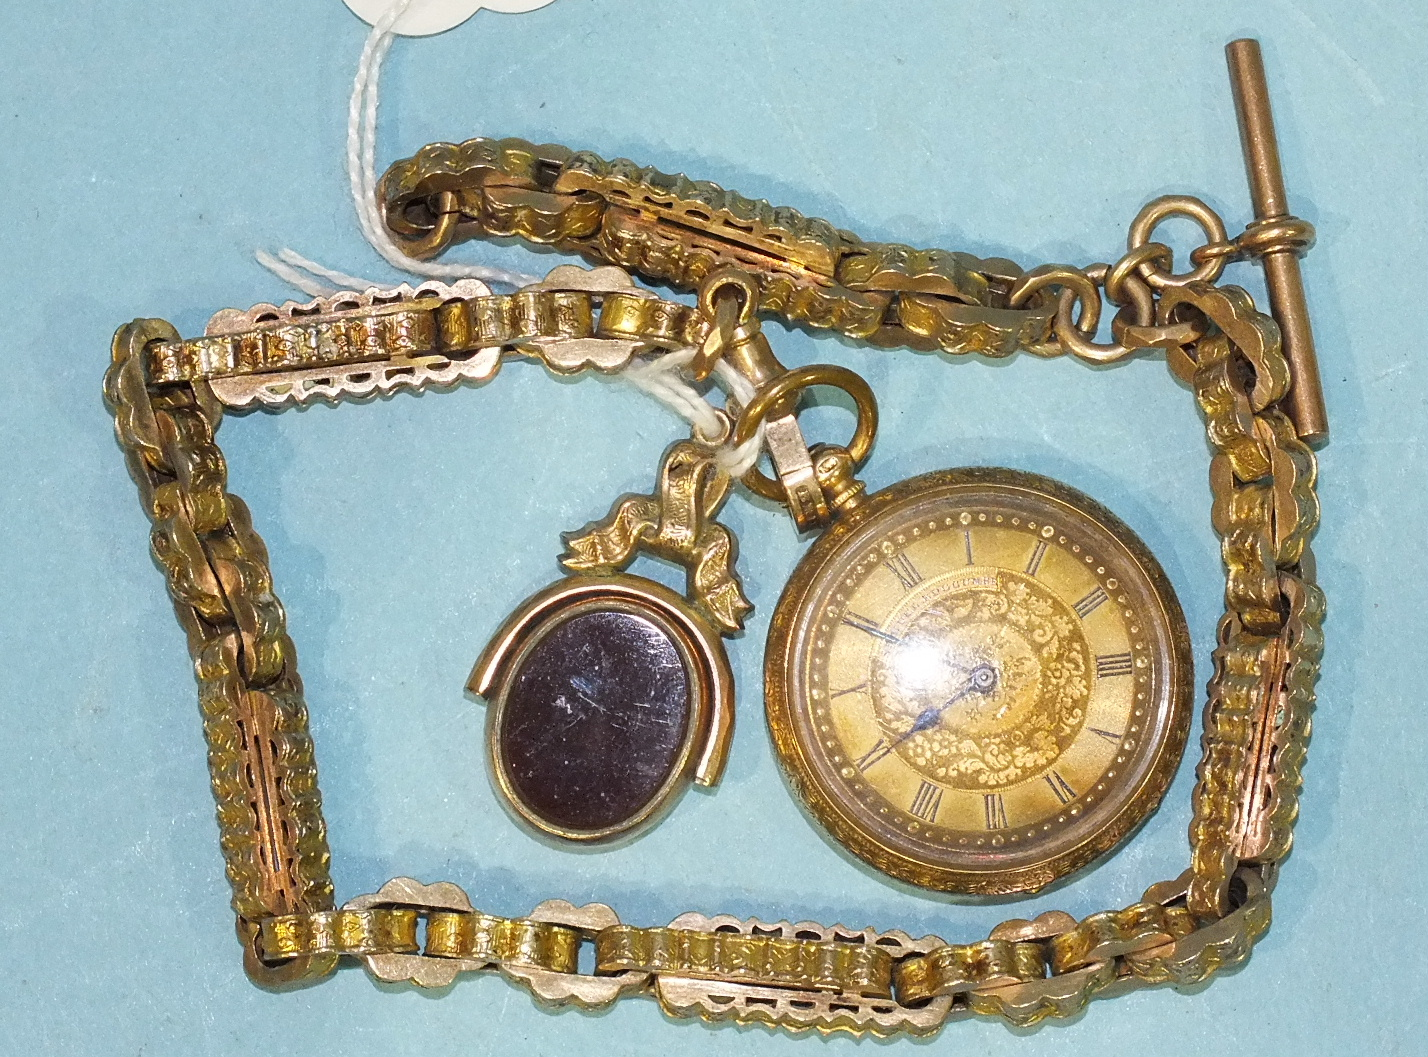 Lot 303 - A 14k gold-cased keywind open-face pocket watch, 35mm diameter, a gold-mounted swivel fob and a gilt